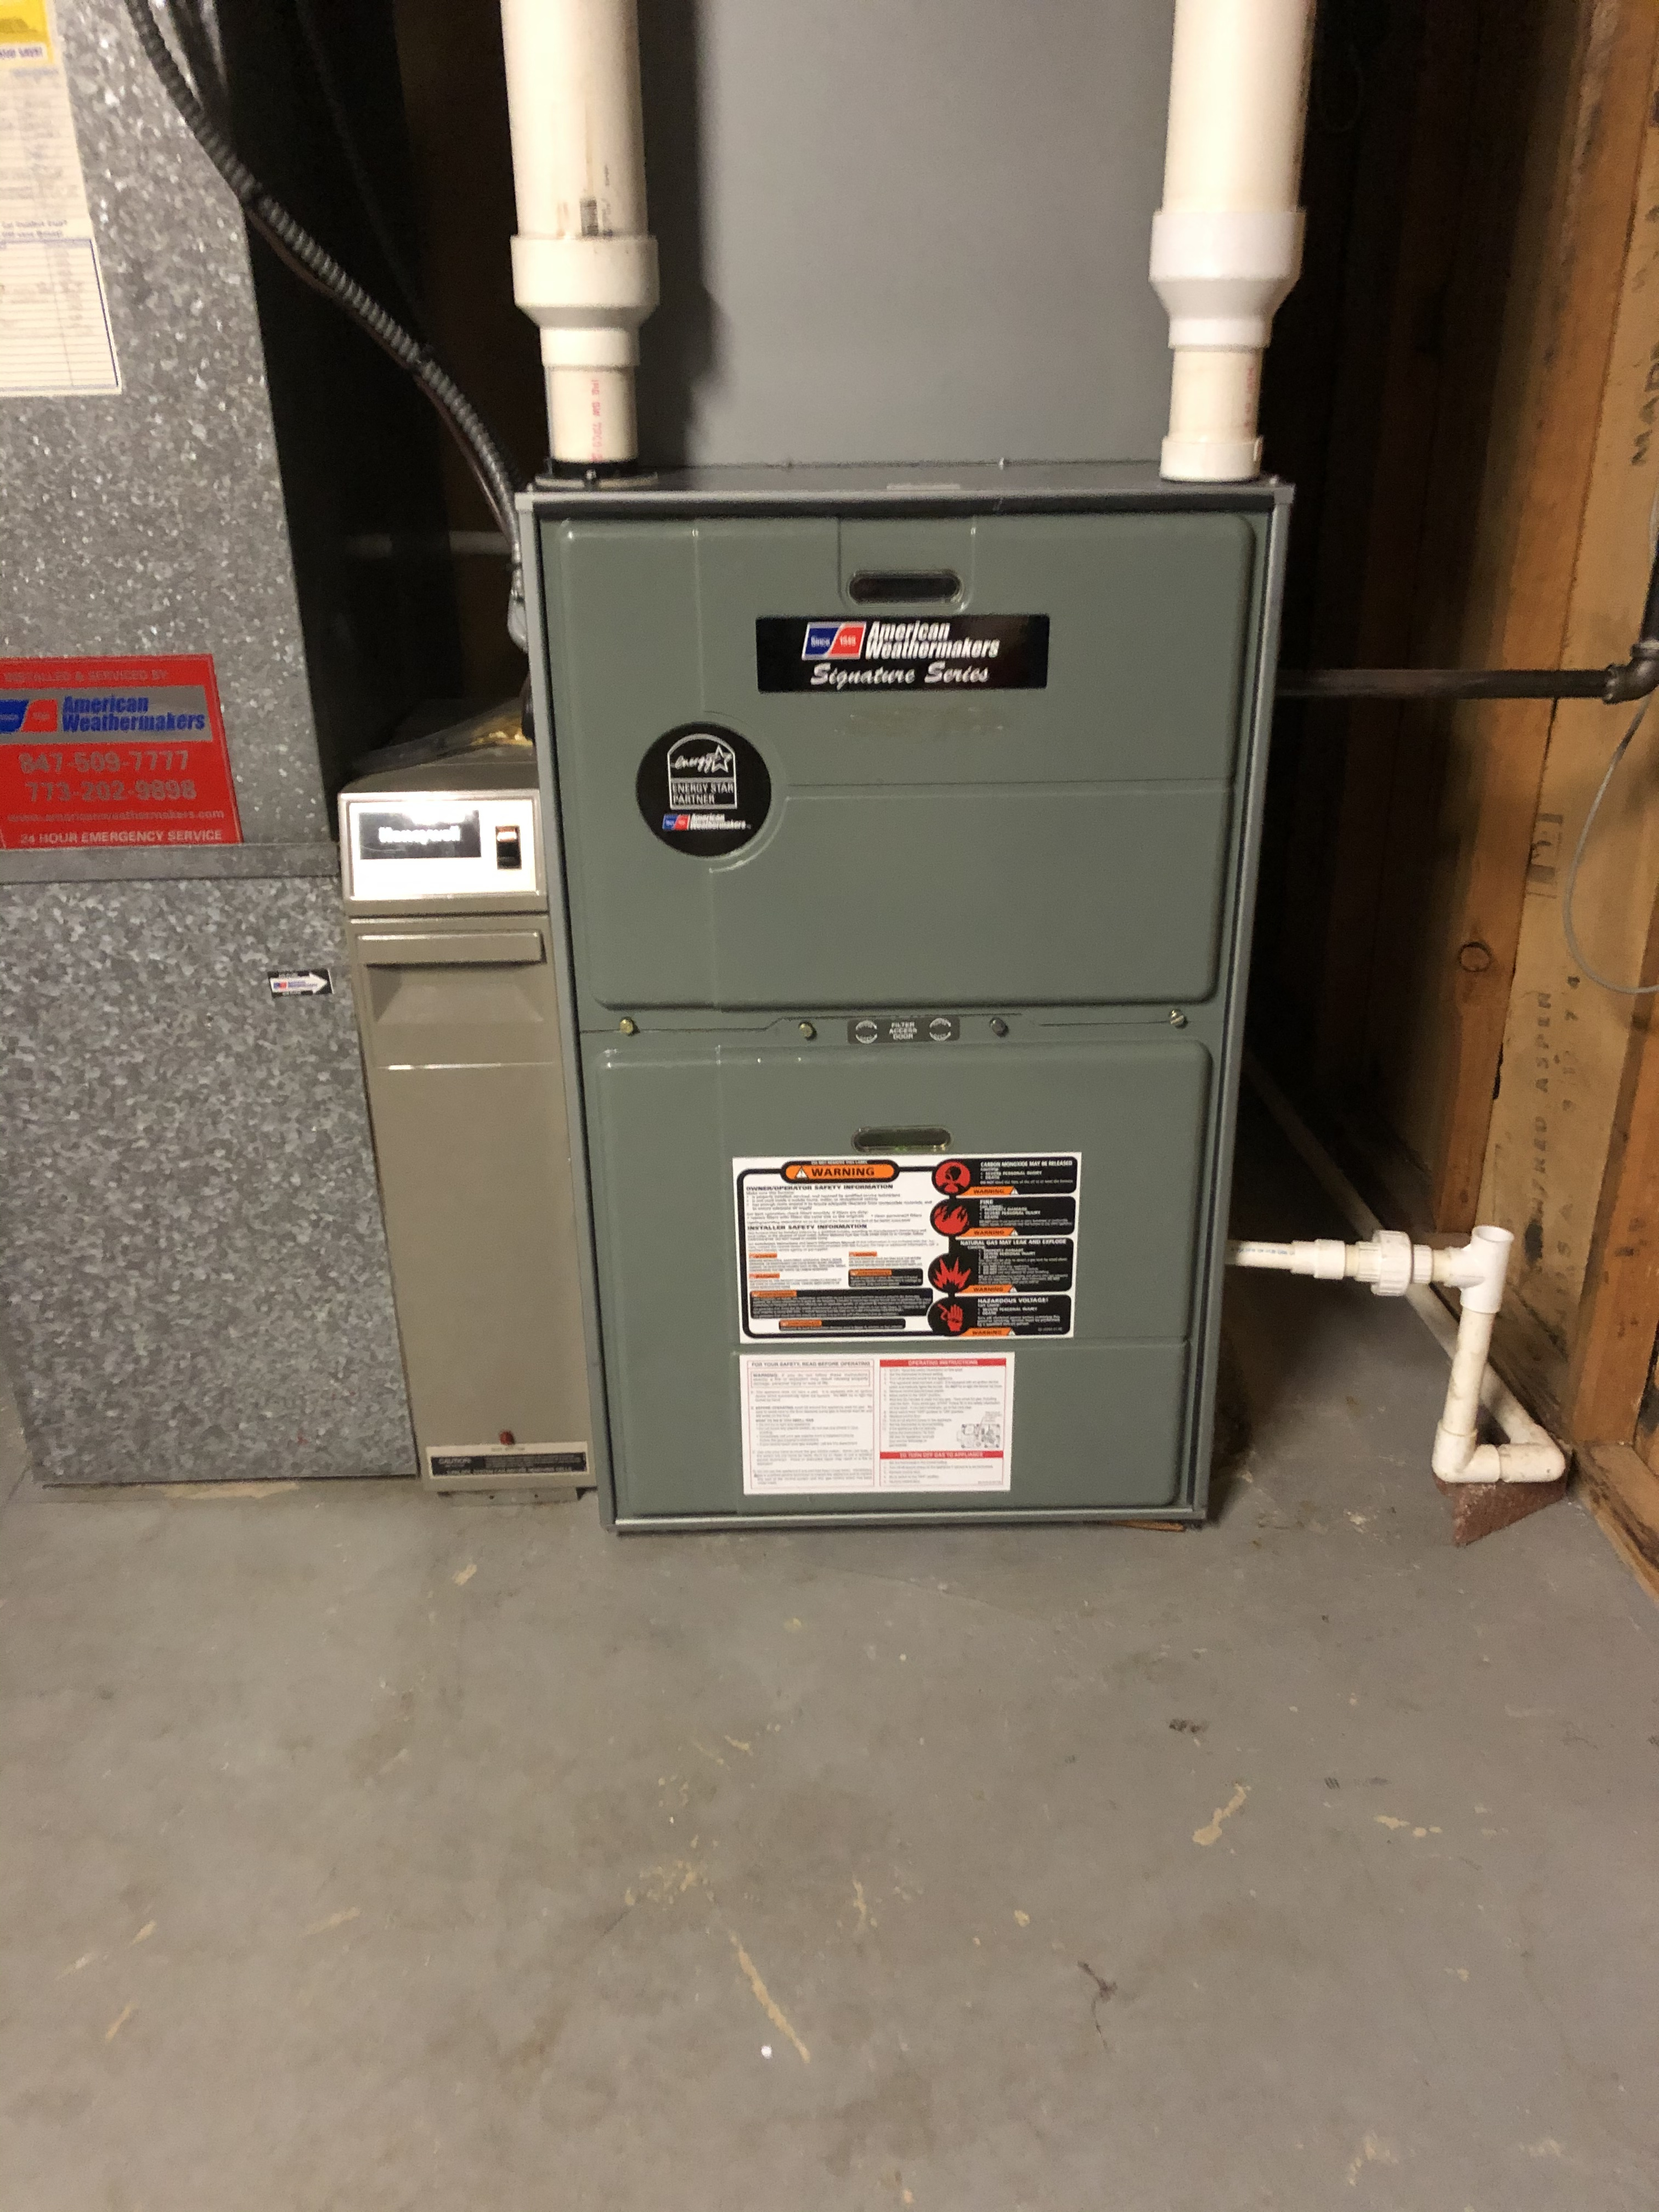 Make sure your Ruud furnace is running nice for the winter. Call American Weathermakers to schedule a maintenance today.